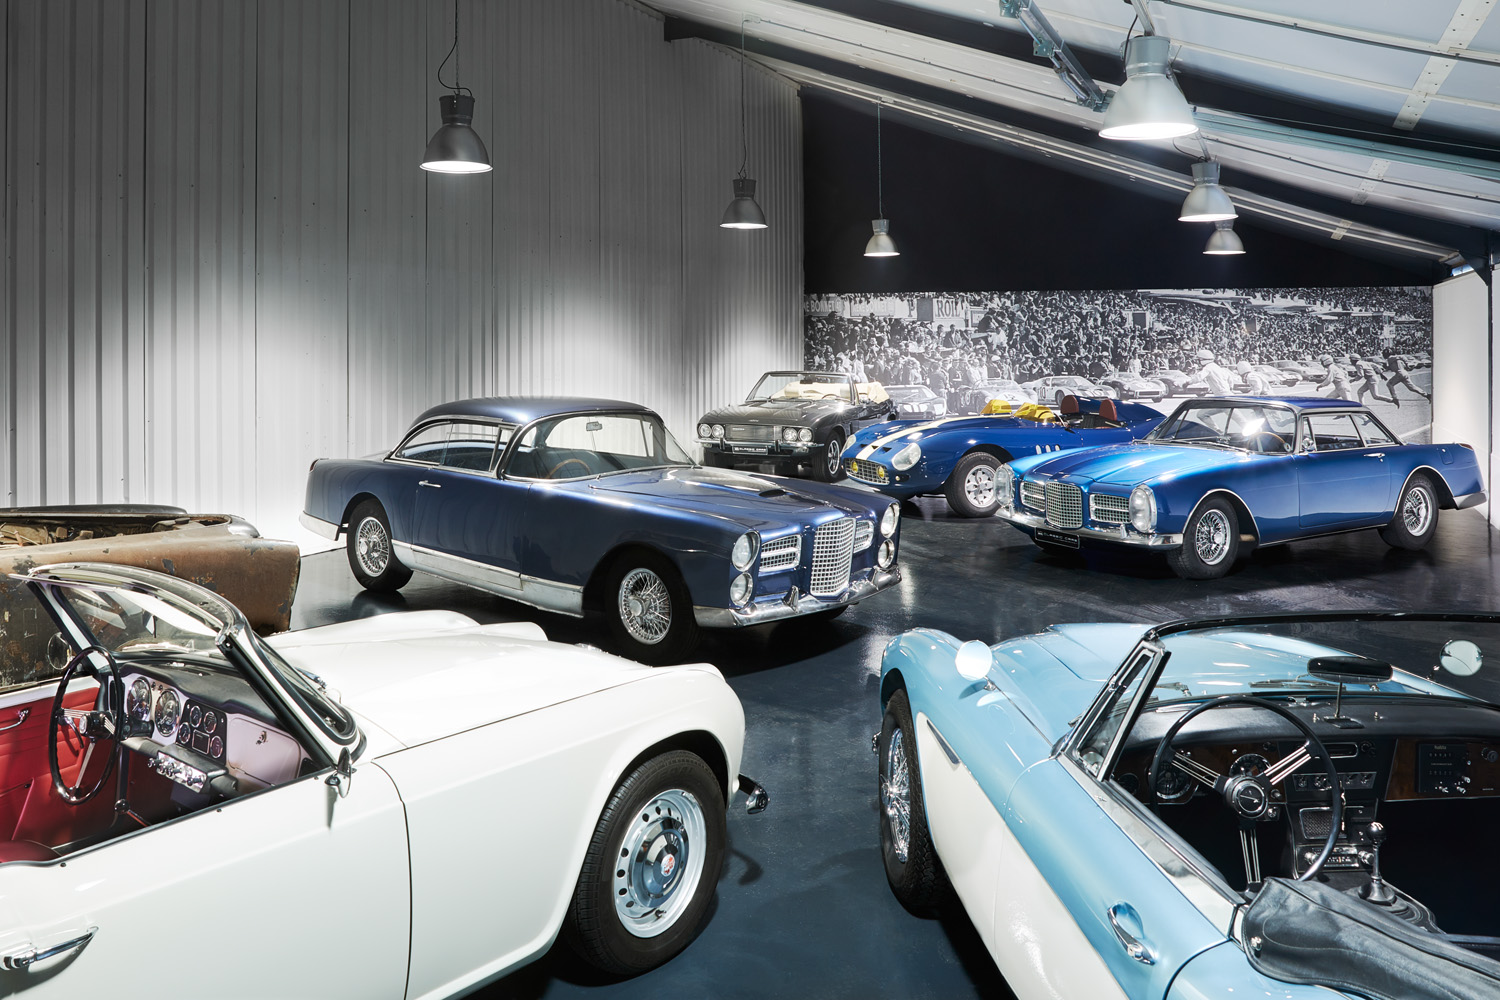 JB Classic Cars - For the few who want the finest